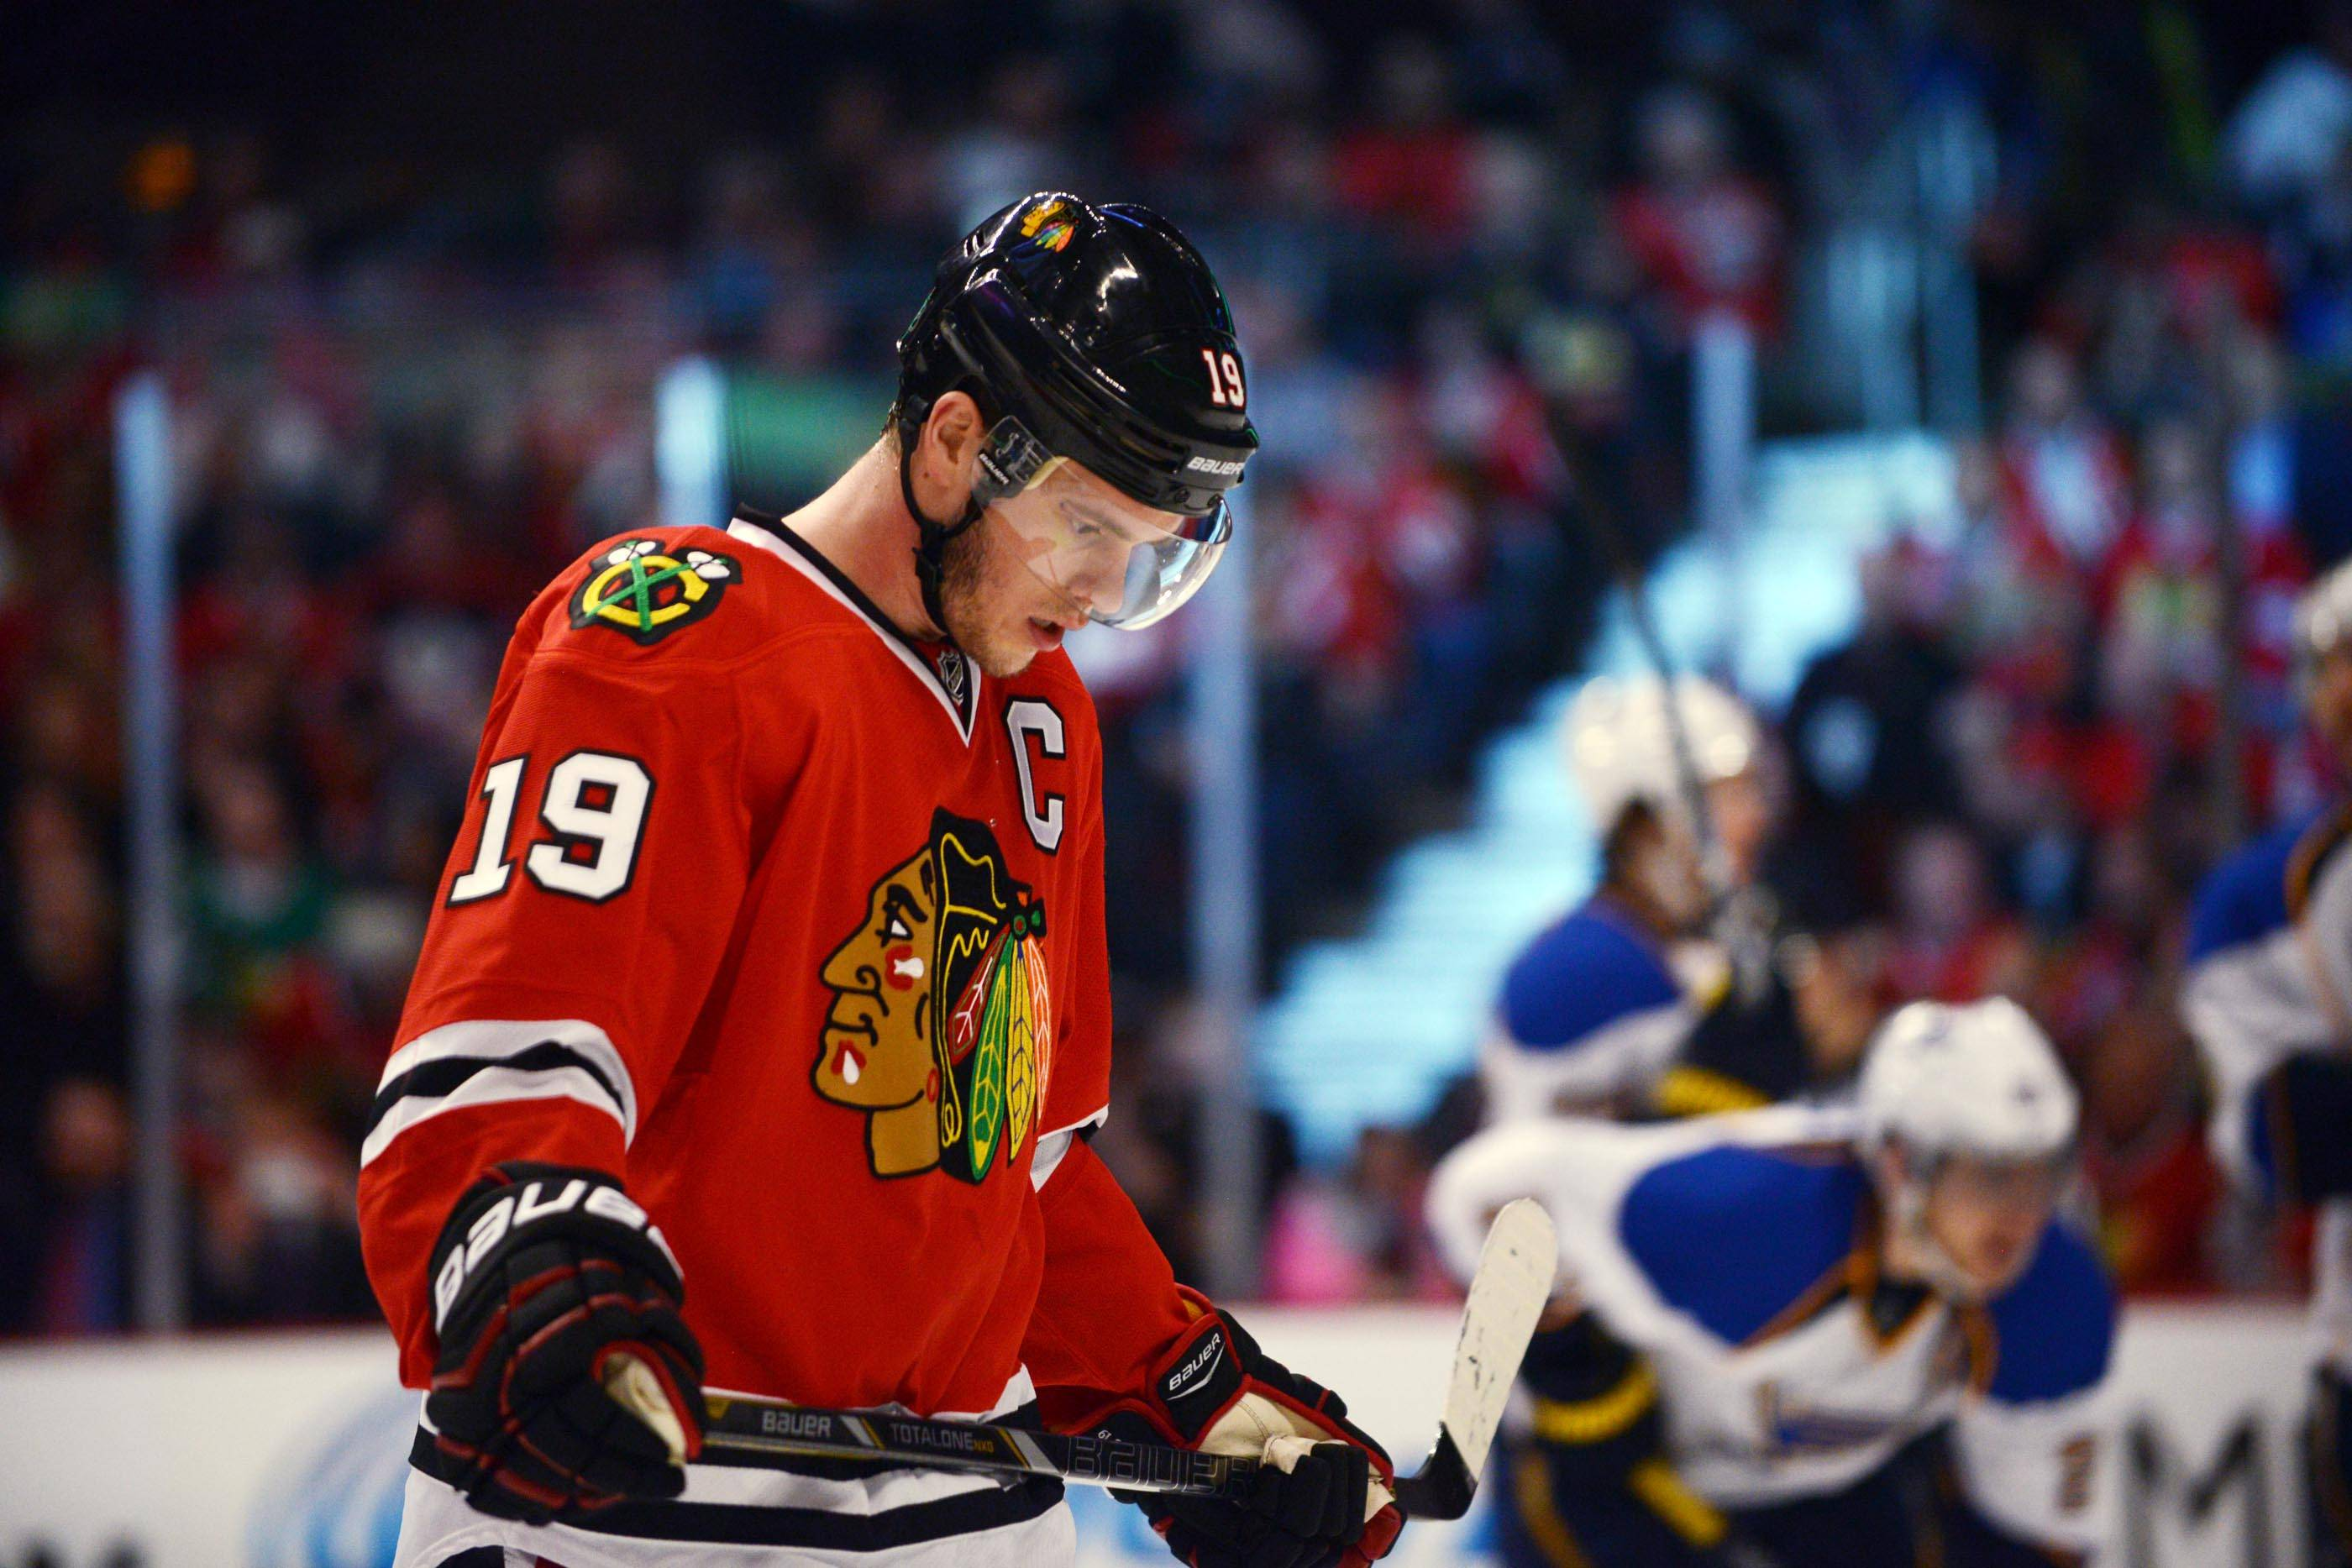 With his all-around game, Blackhawks center Jonathan Toews is a finalist again for the NHL's Selke Trophy for the league's top defensive-minded forward. Toews won the award last year.